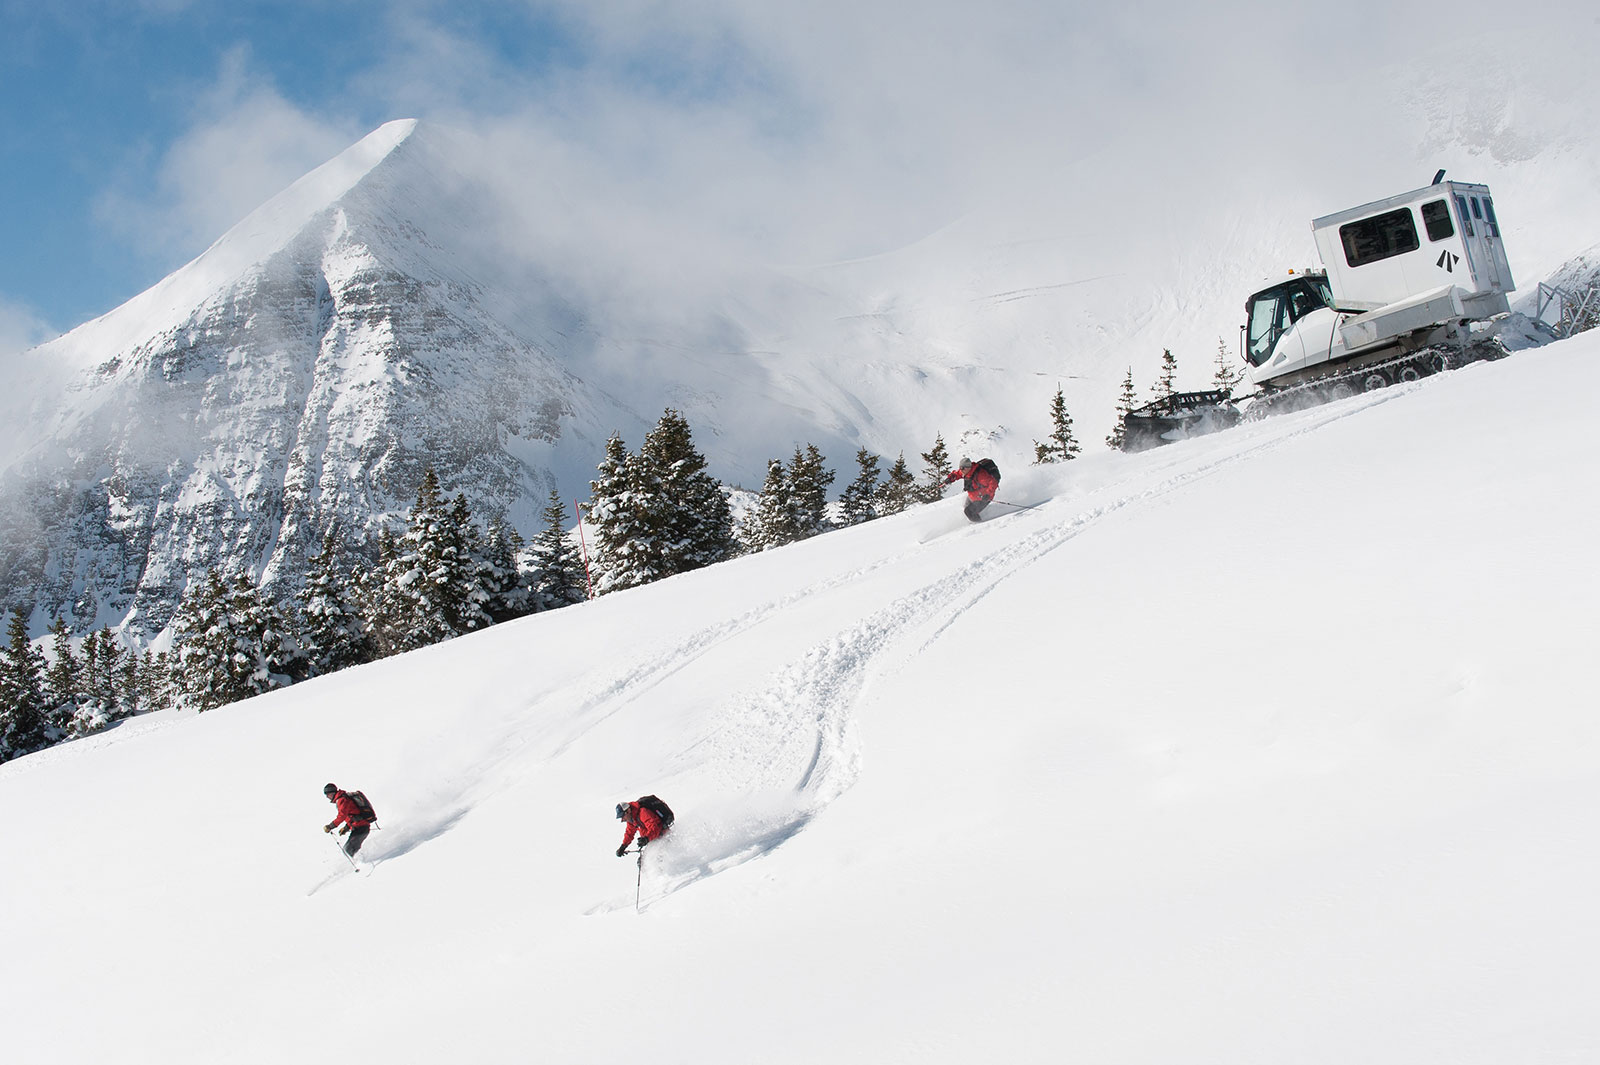 Private skiing excursions near crested butte.